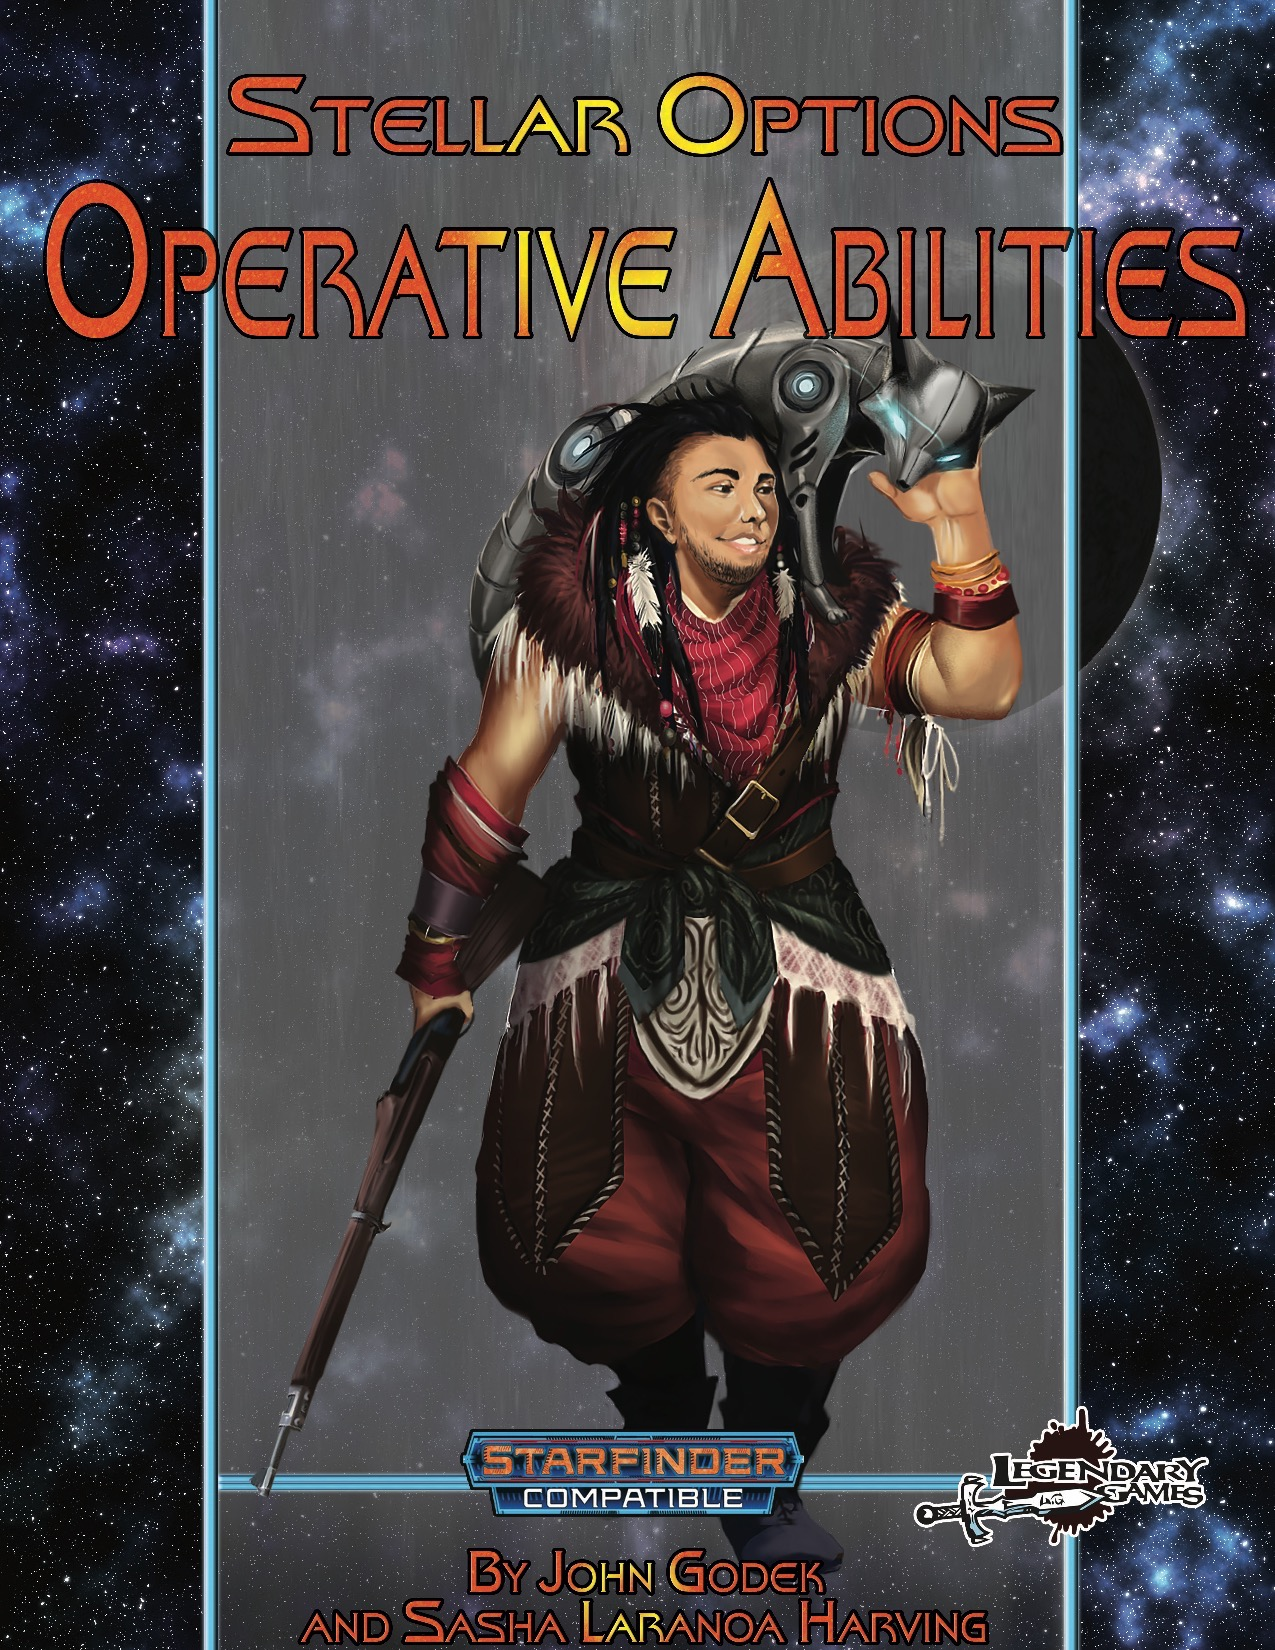 Stellar Options 5, Operative Avilities PDF. Cover featureing a man dressed in red and brown leather with a gun in one hands and a robotic fox on his shoulder